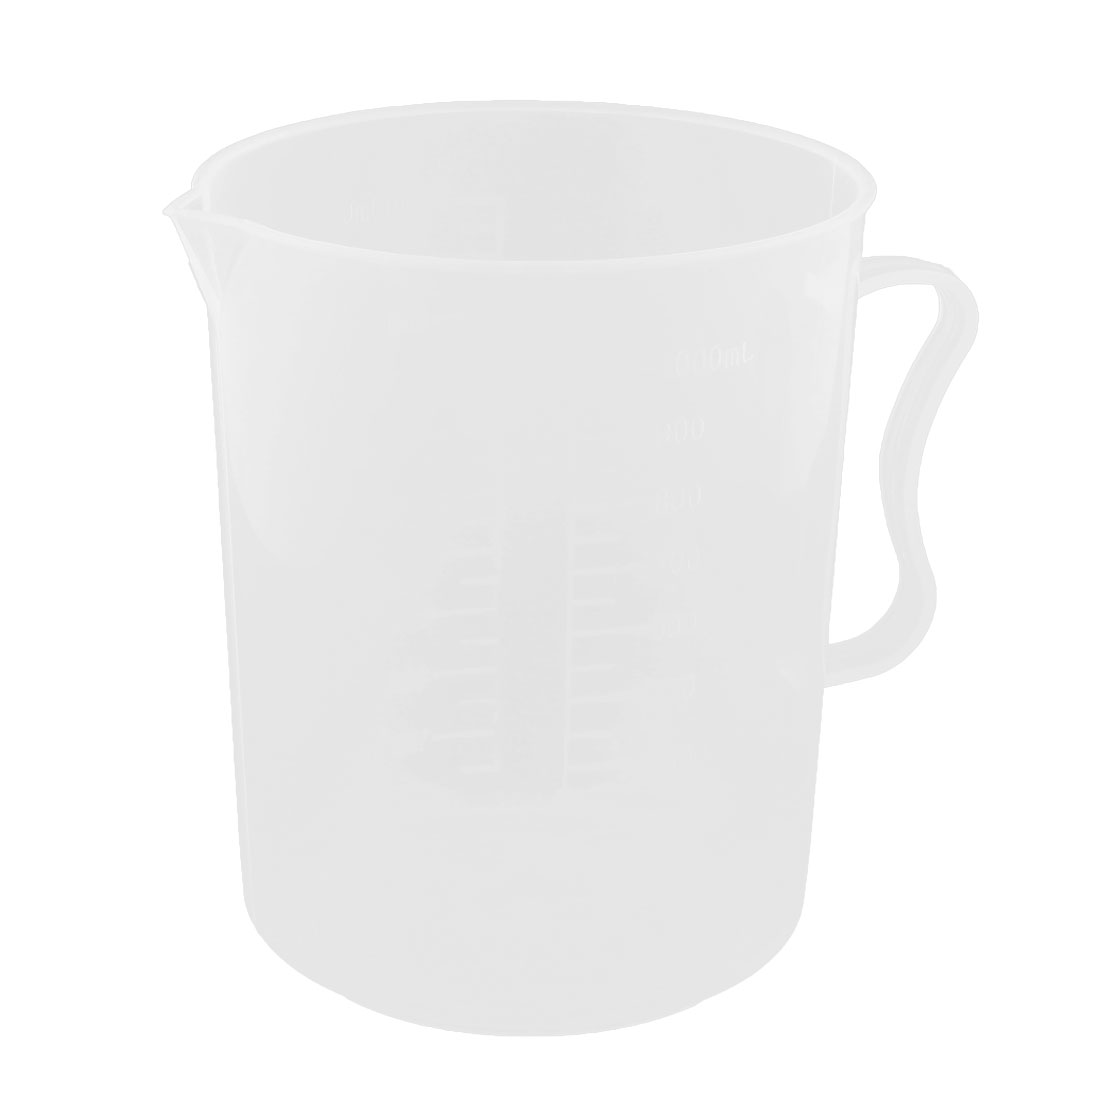 Home Lab Plastic Graduation Scale Beaker Baking Cooking Experiment Measure Cup Mug 1000ml